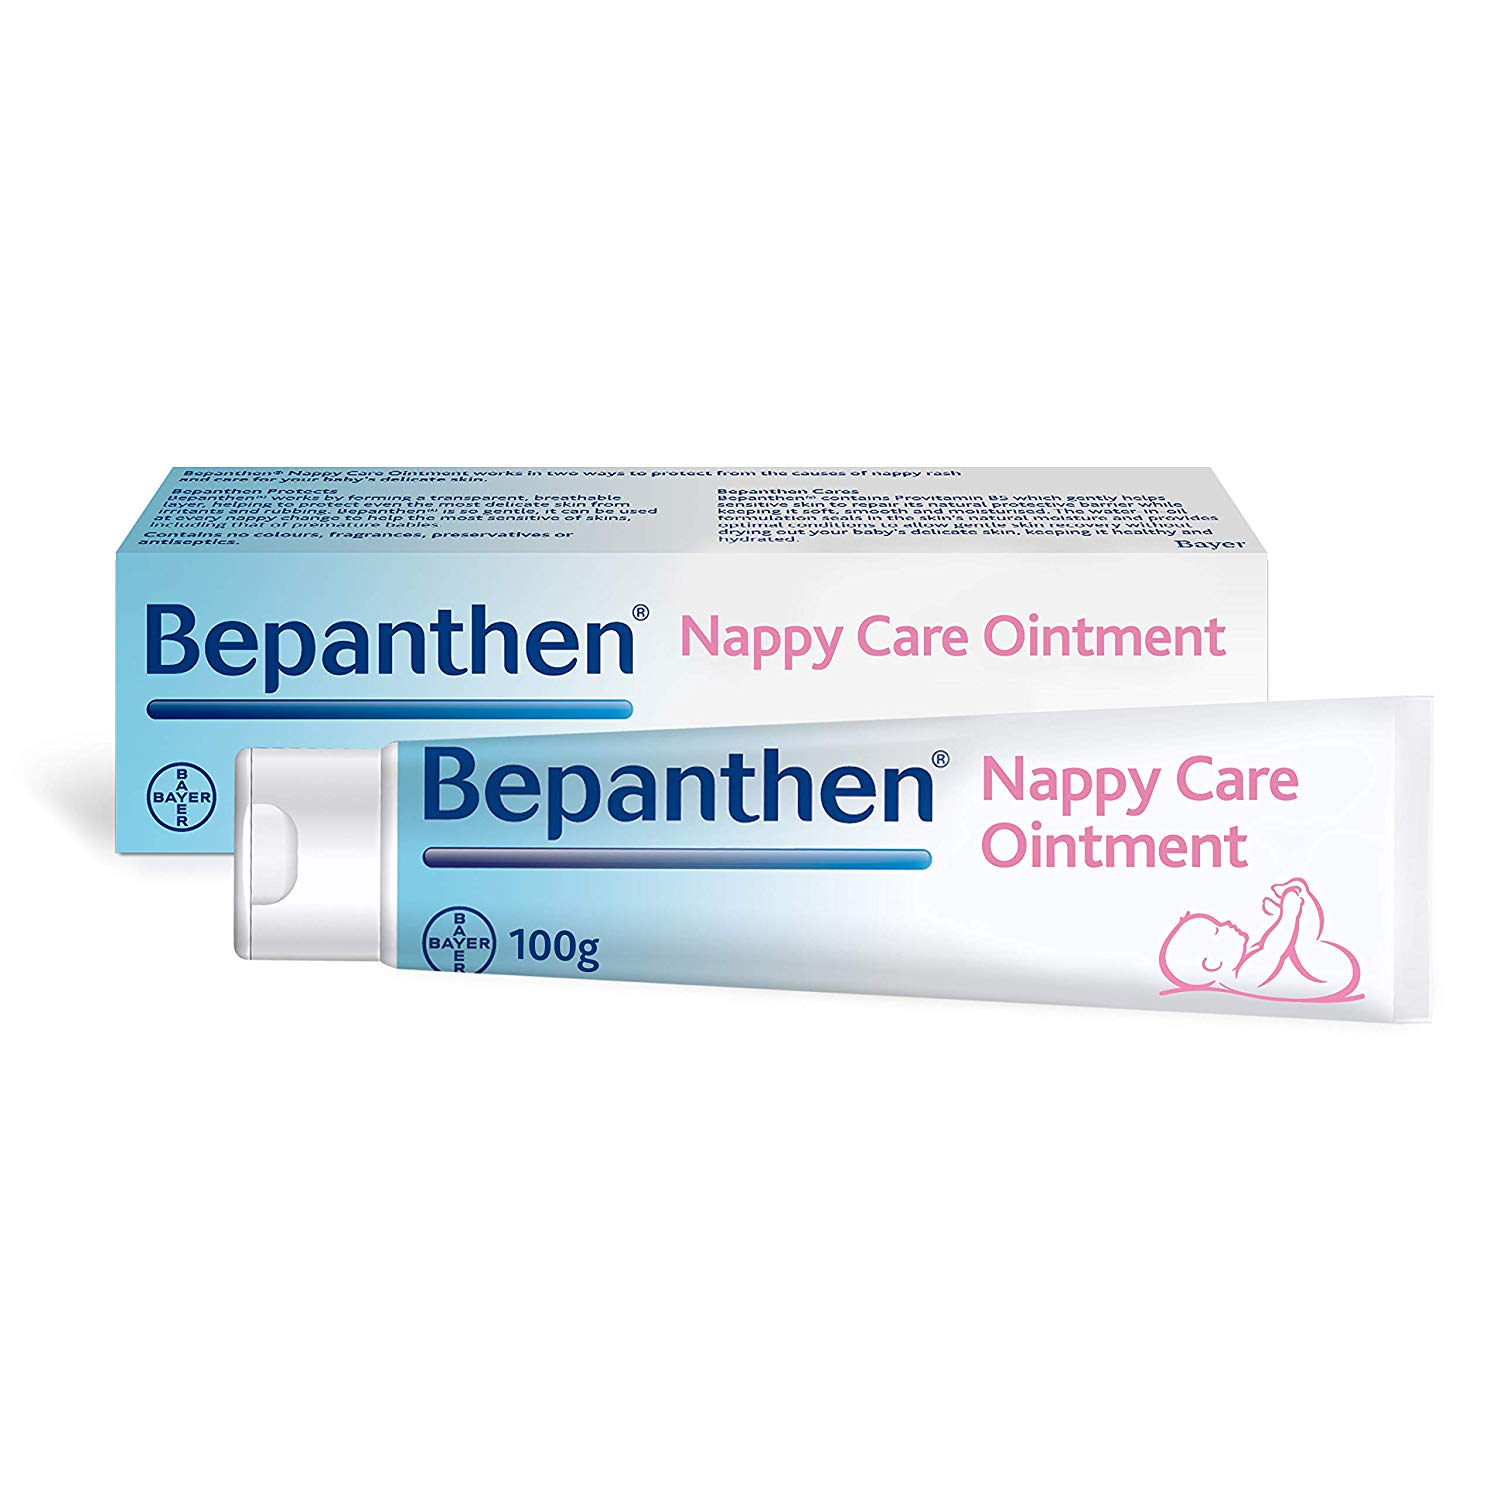 Bepanthen Nappy Care Ointment 100g